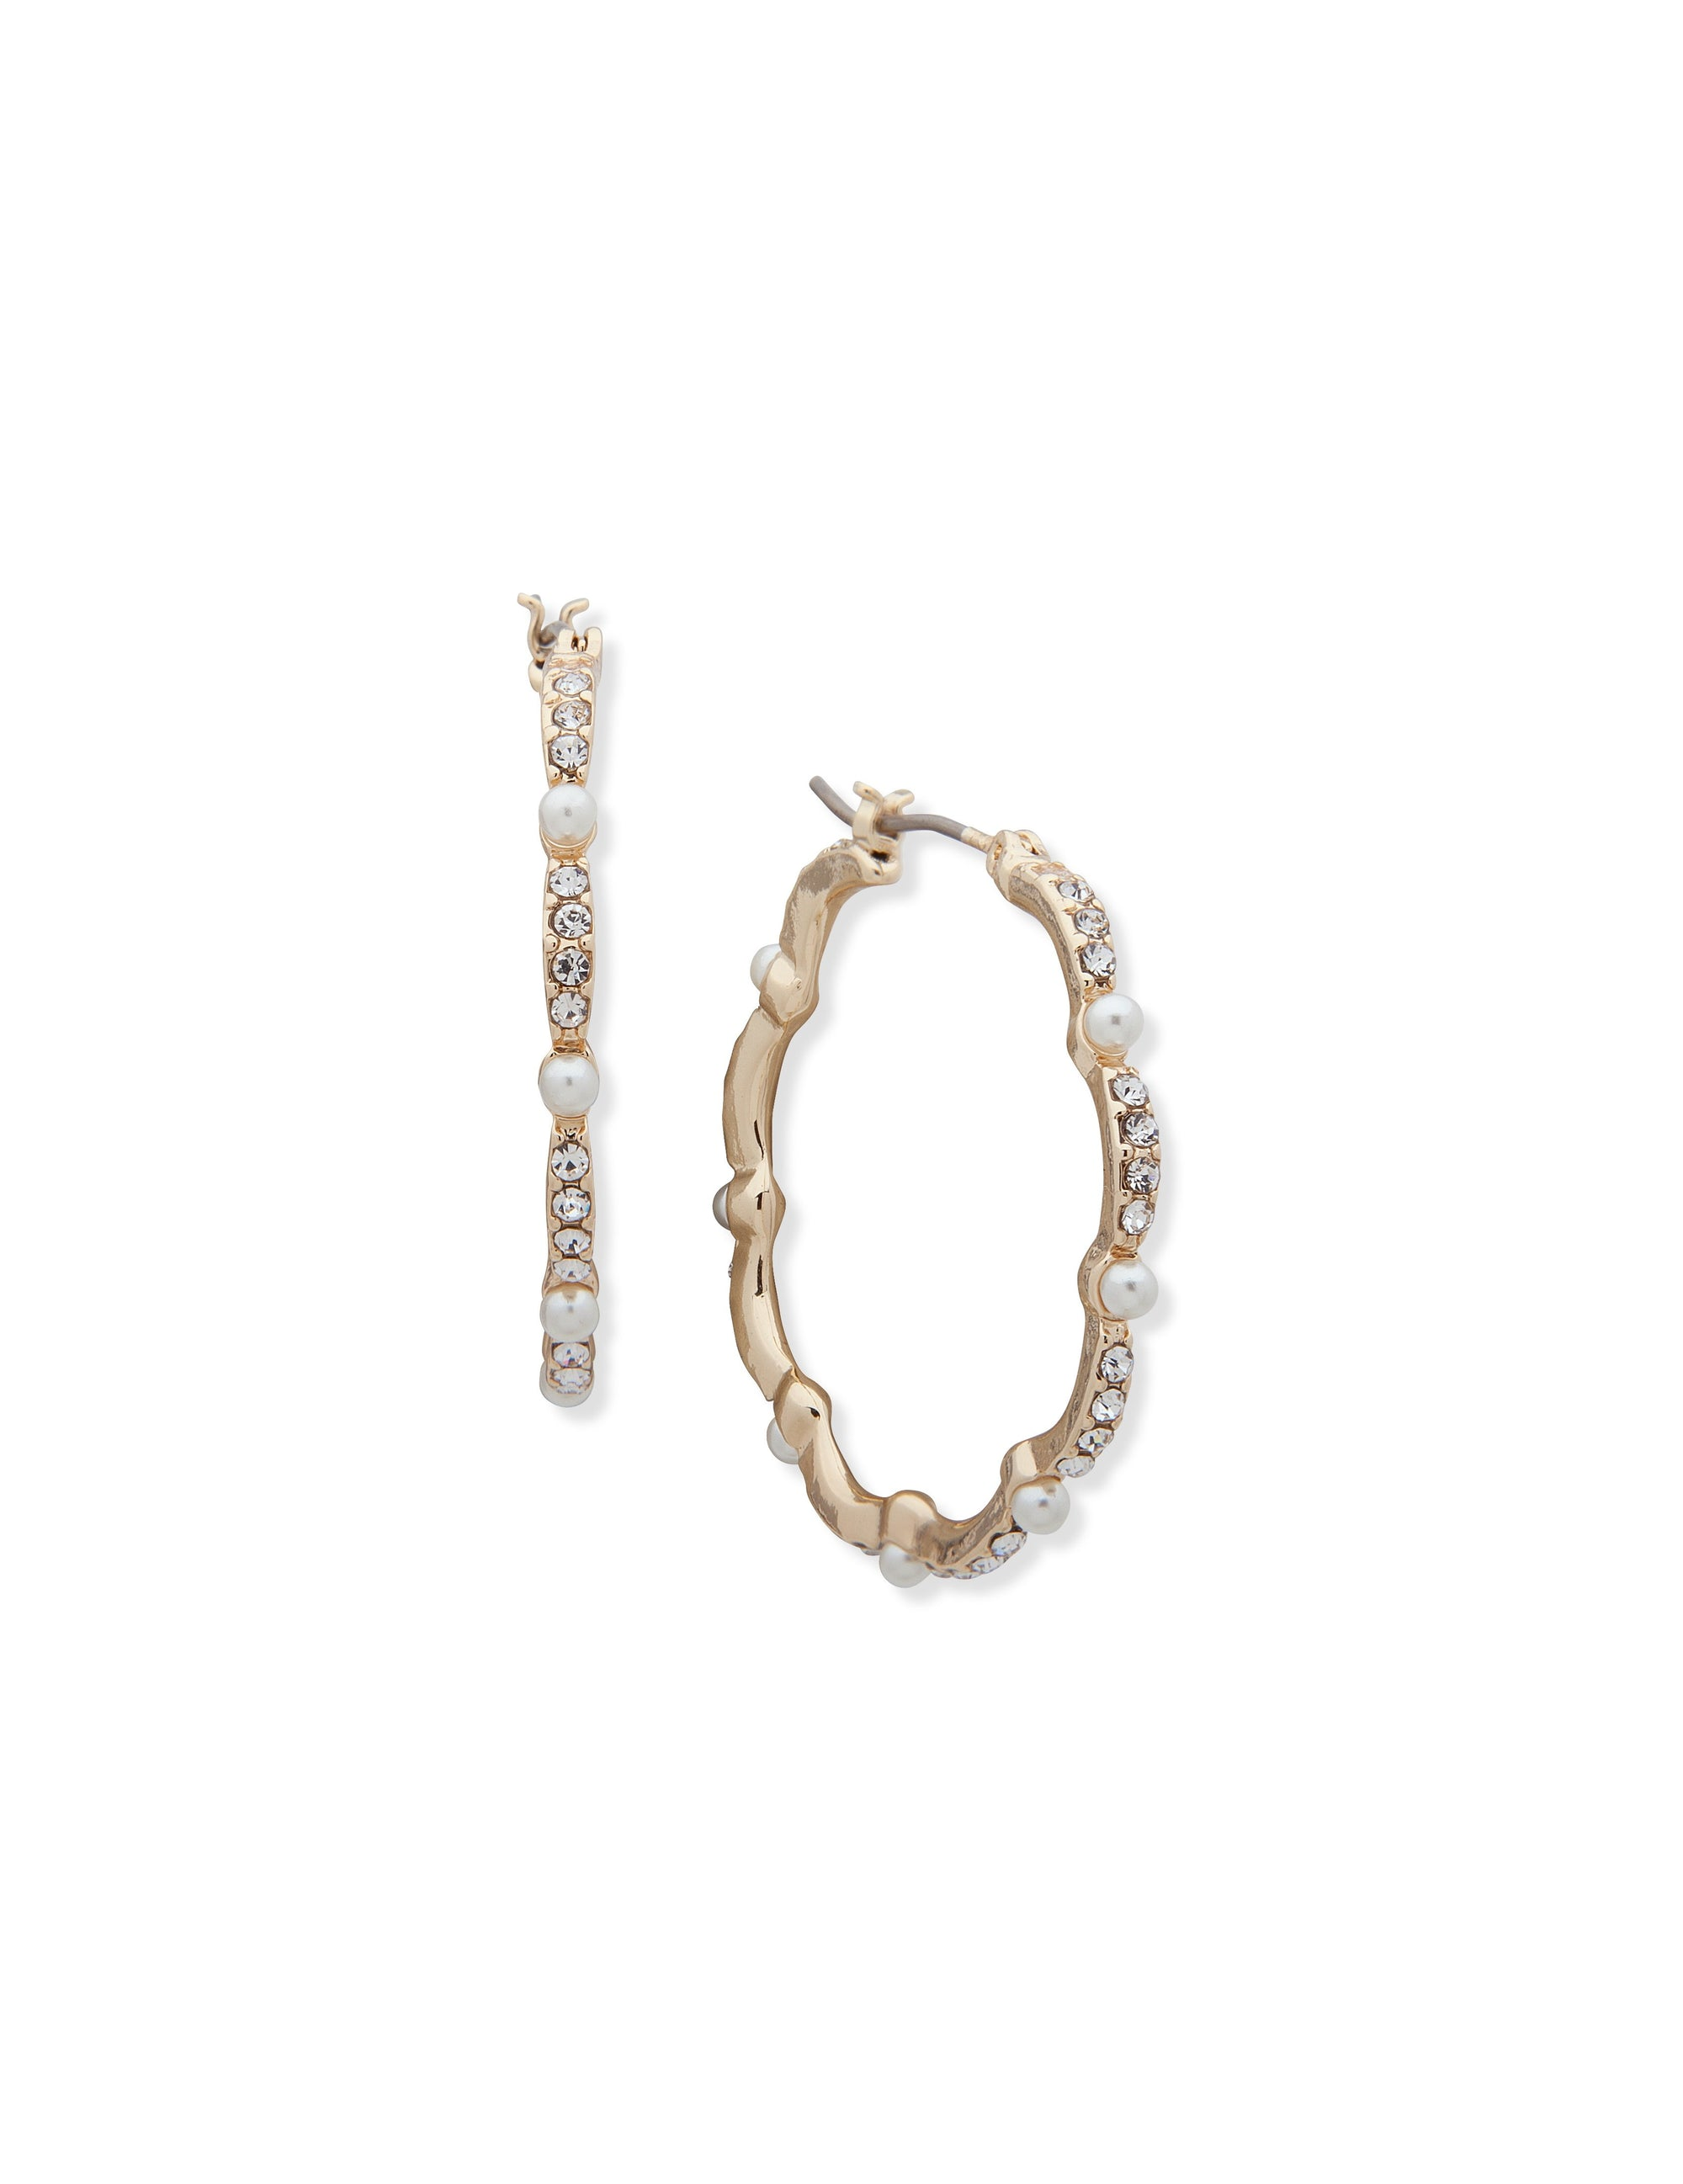 gold tone pave click top hoop earring with pave and pearl details.